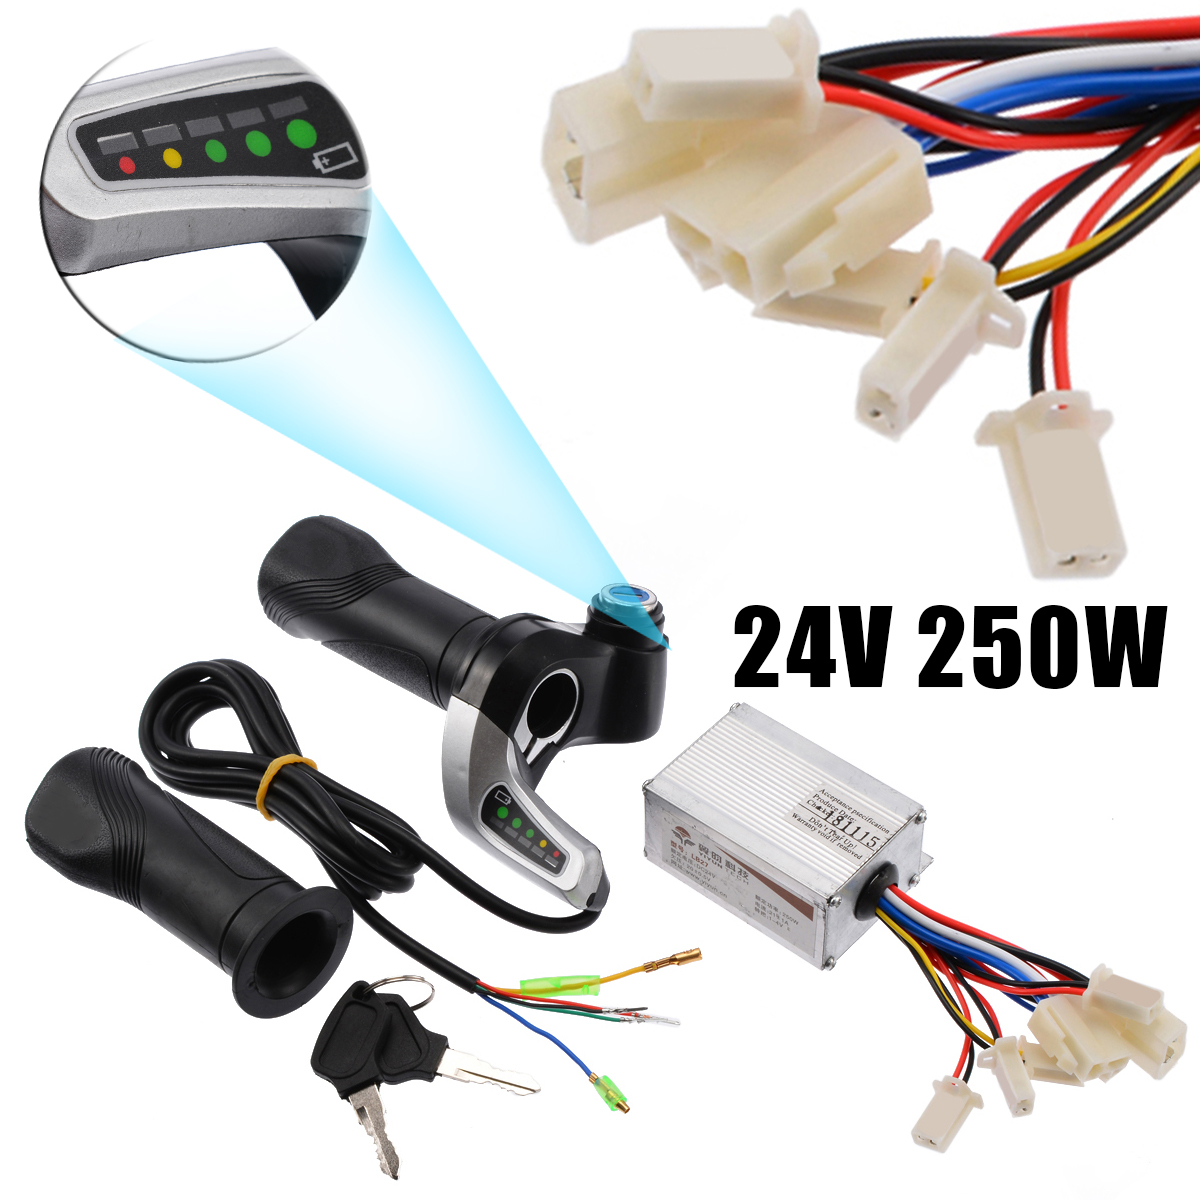 Electric Bicycle Accessories 24V 250W Electric Scooter Motor Brushed Controller & Throttle Twist Grip For Electric Scooter Bike